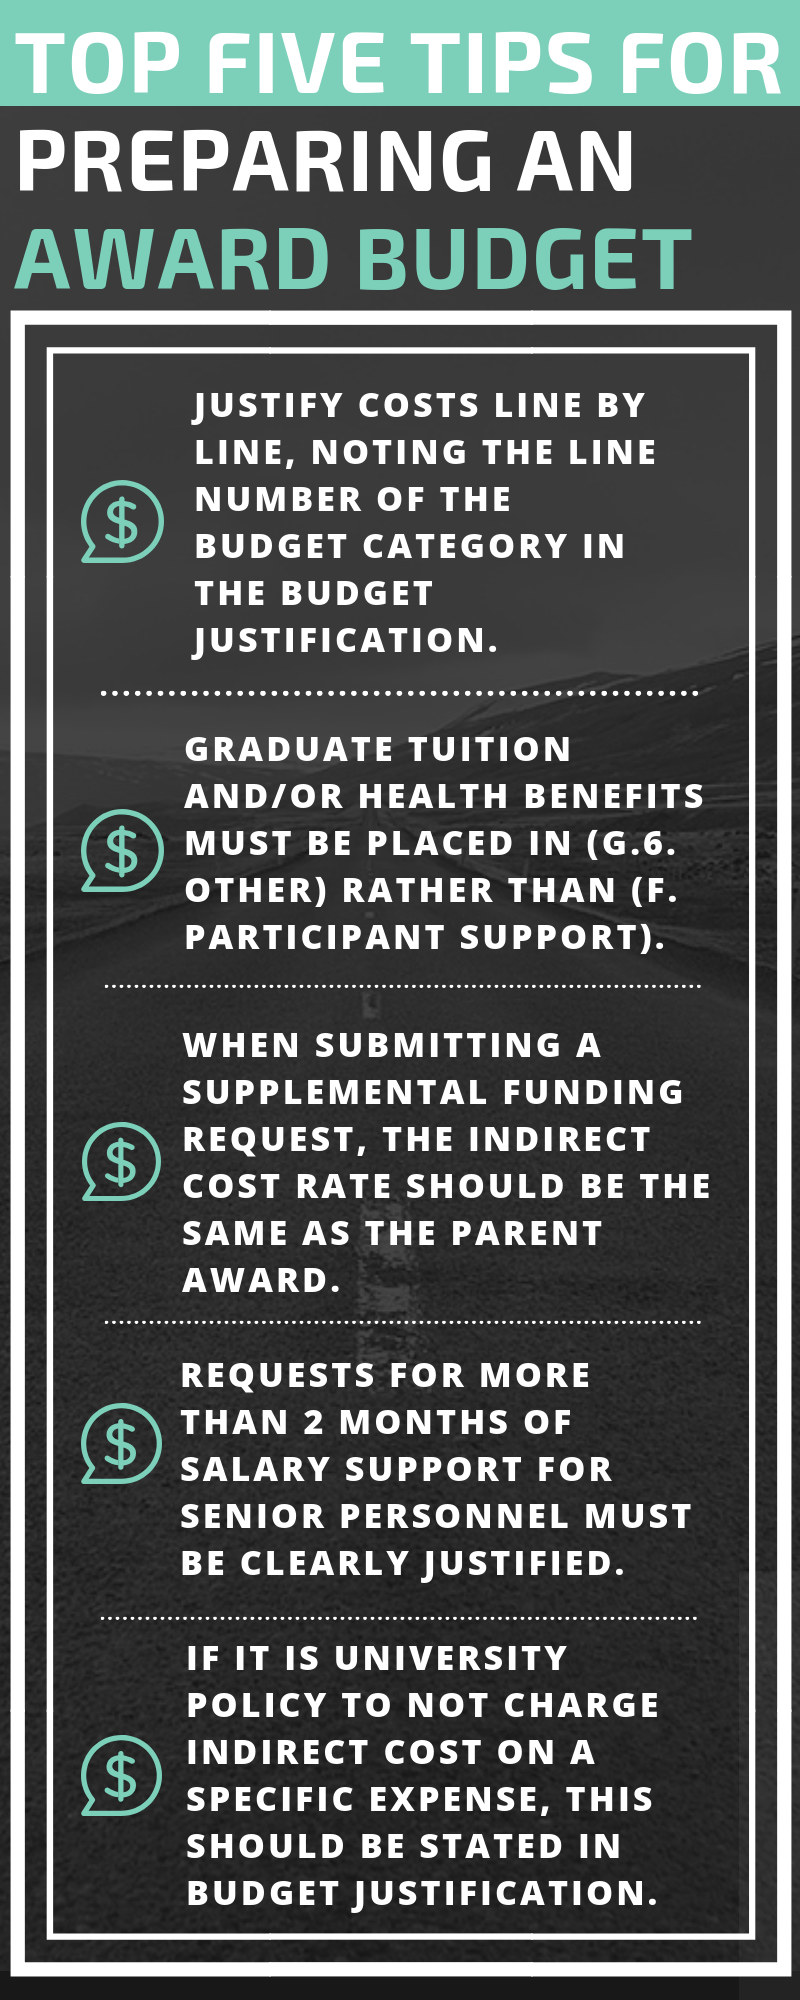 Tip 1: JUSTIFY COSTS LINE BY LINE, NOTING THE LINE NUMBER OF THE BUDGET CATEGORY IN THE BUDGET JUSTIFICATION. Tip 2: GRADUATE TUITION AND/OR HEALTH BENEFITS MUST BE PLACED IN (G.6. OTHER) RATHER THAN (F. PARTICIPANT SUPPORT). Tip 3: WHEN SUBMITTING A SUPPLEMENTAL FUNDING REQUEST, THE INDIRECT COST RATE SHOULD BE THE SAME AS THE PARENT AWARD. Tip 4: REQUESTS FOR MORE THAN 2 MONTHS OF SALARY SUPPORT FOR SENIOR PERSONNEL MUST BE CLEARLY JUSTIFIED.  Tip 5: IF IT IS UNIVERSITY POLICY TO NOT CHARGE INDIRECT COST ON A SPECIFIC EXPENSE, THIS SHOULD BE STATED IN BUDGET JUSTIFICATION.